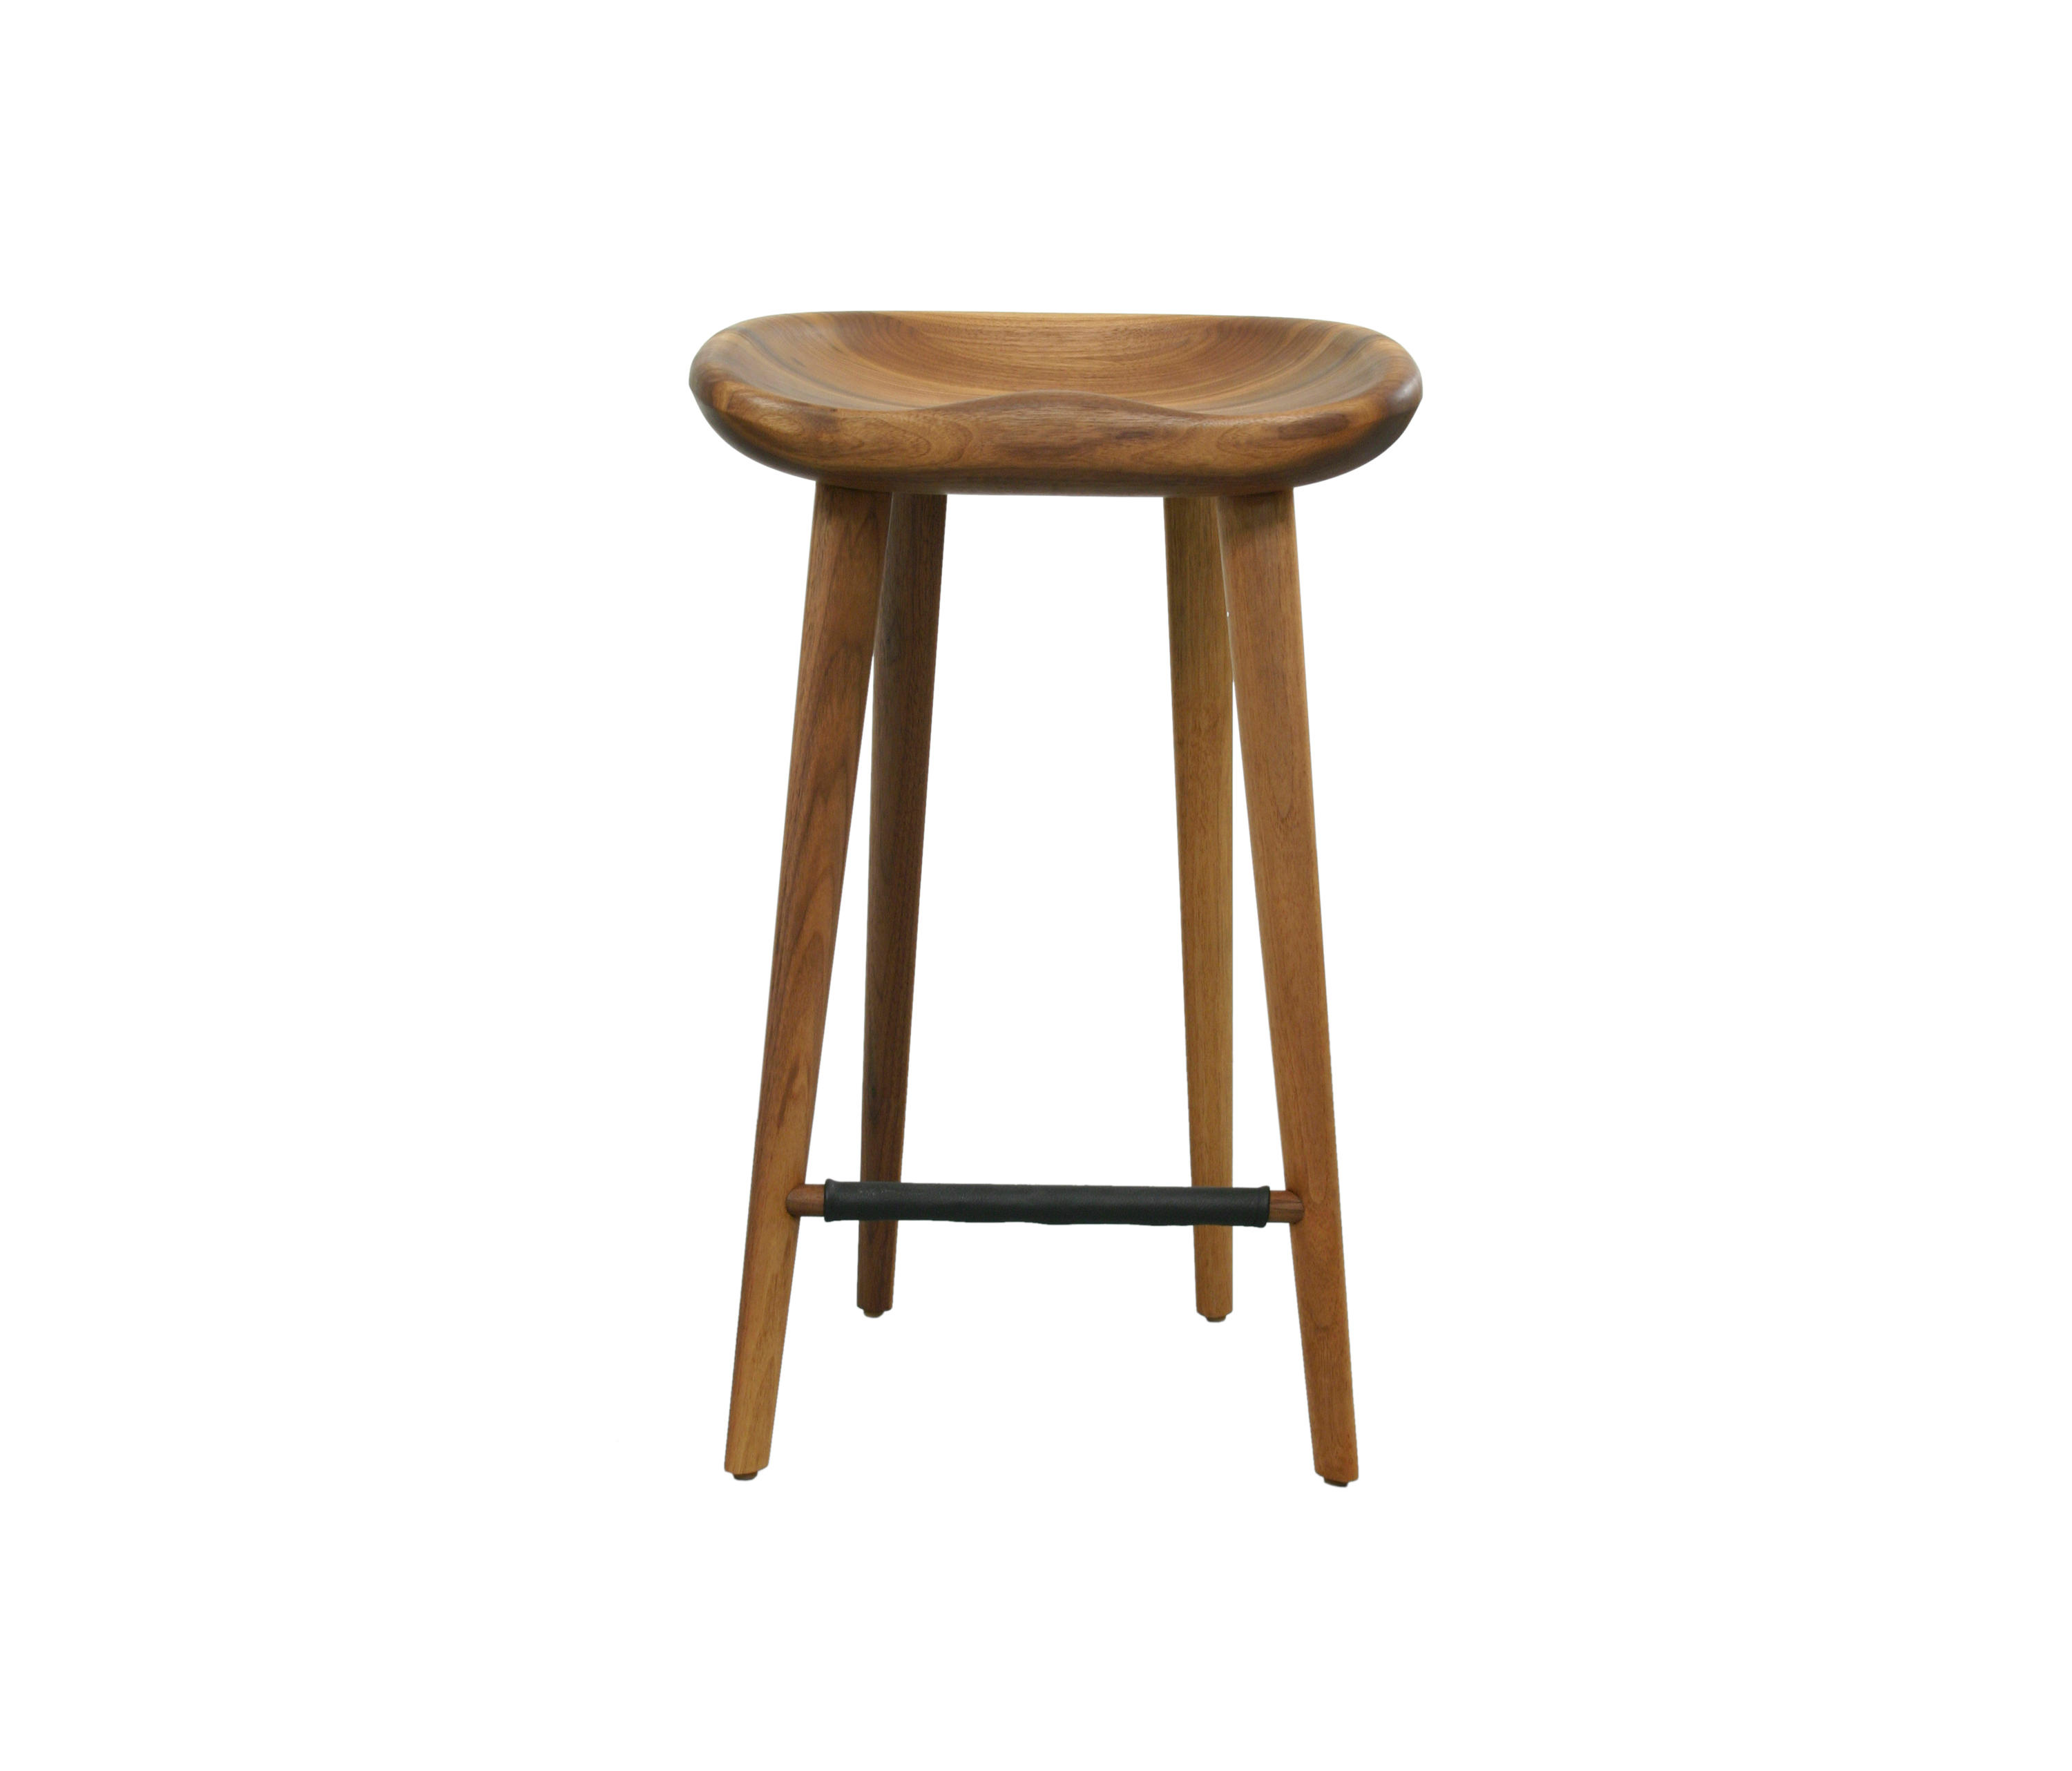 TRACTOR COUNTER STOOL - Bar stools from BassamFellows | Architonic